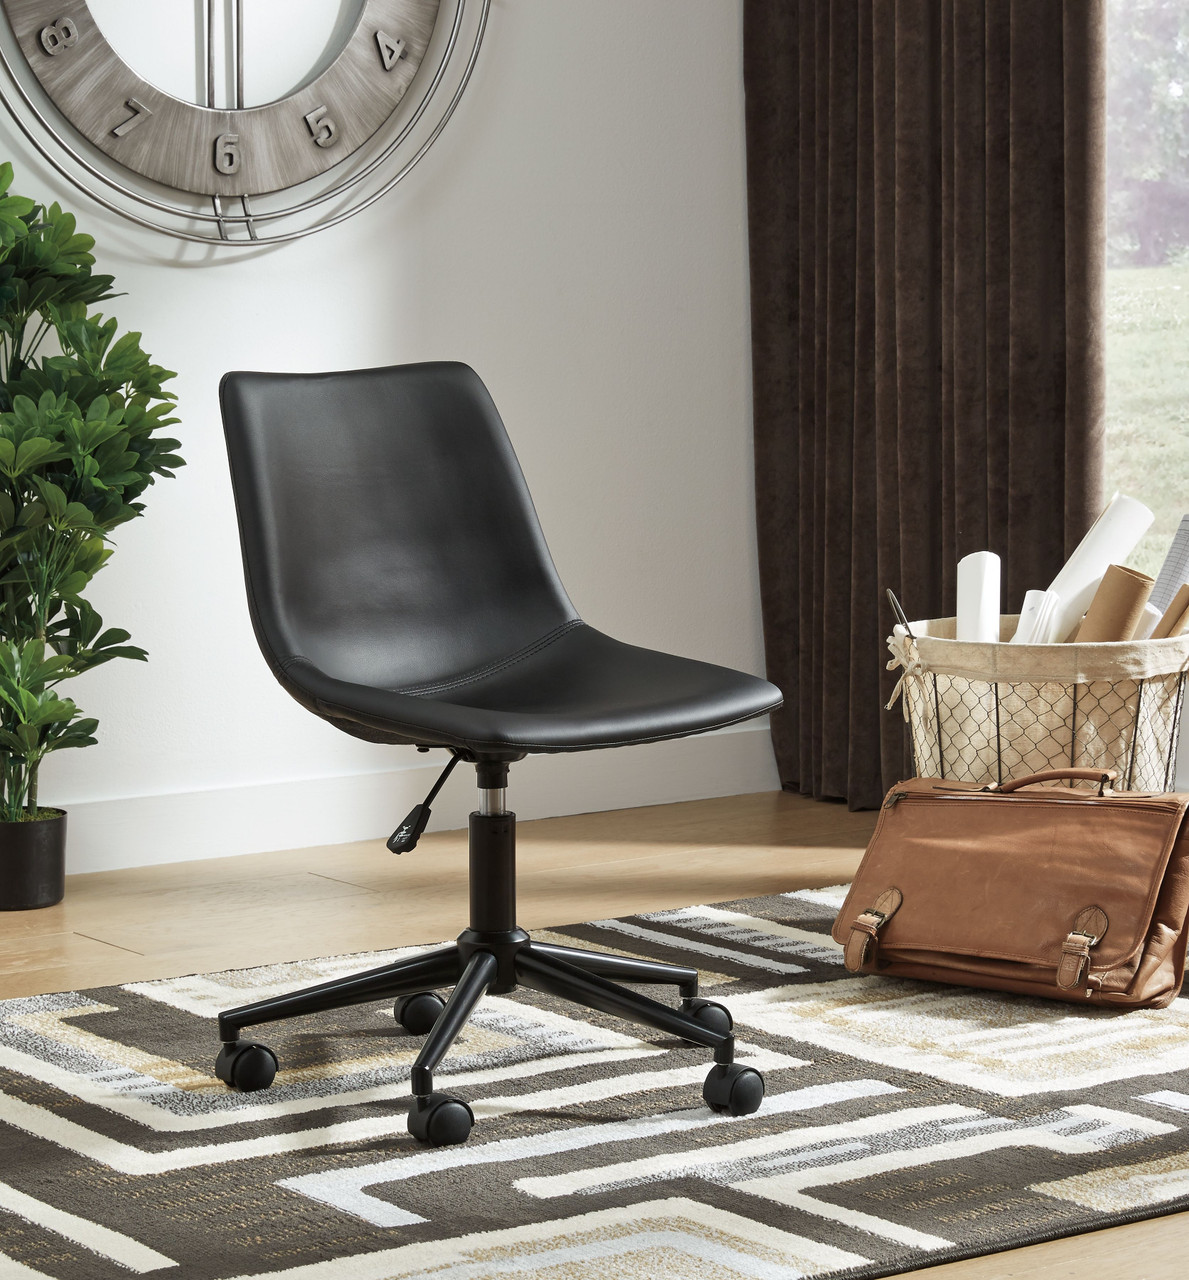 Image of: The Office Chair Program Black Home Office Swivel Desk Chair Sold At Outten Brothers Of Salisbury Proudly Offering Quality Furniture Since 1947 To Salisbury Md And The Surrounding Areas